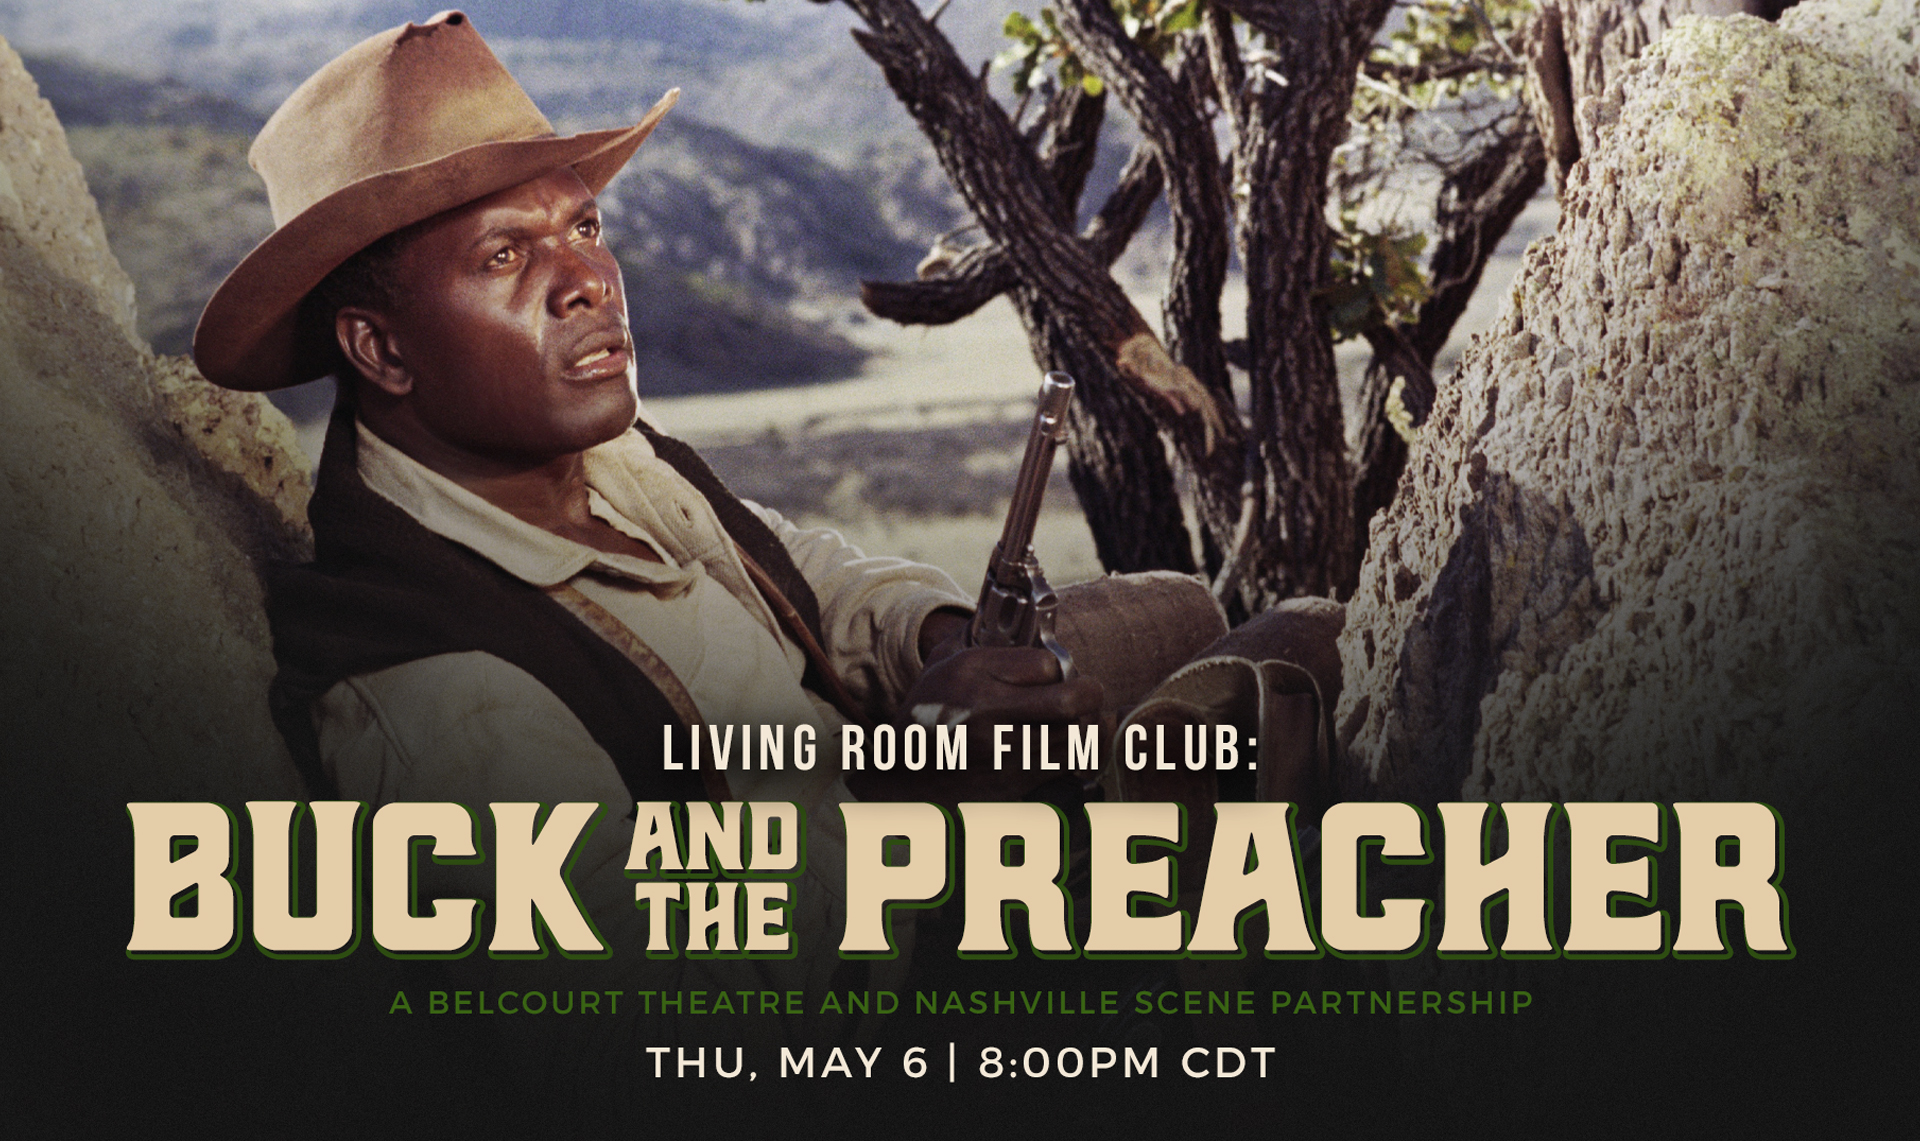 Living Room Film Club: BUCK AND THE PREACHER